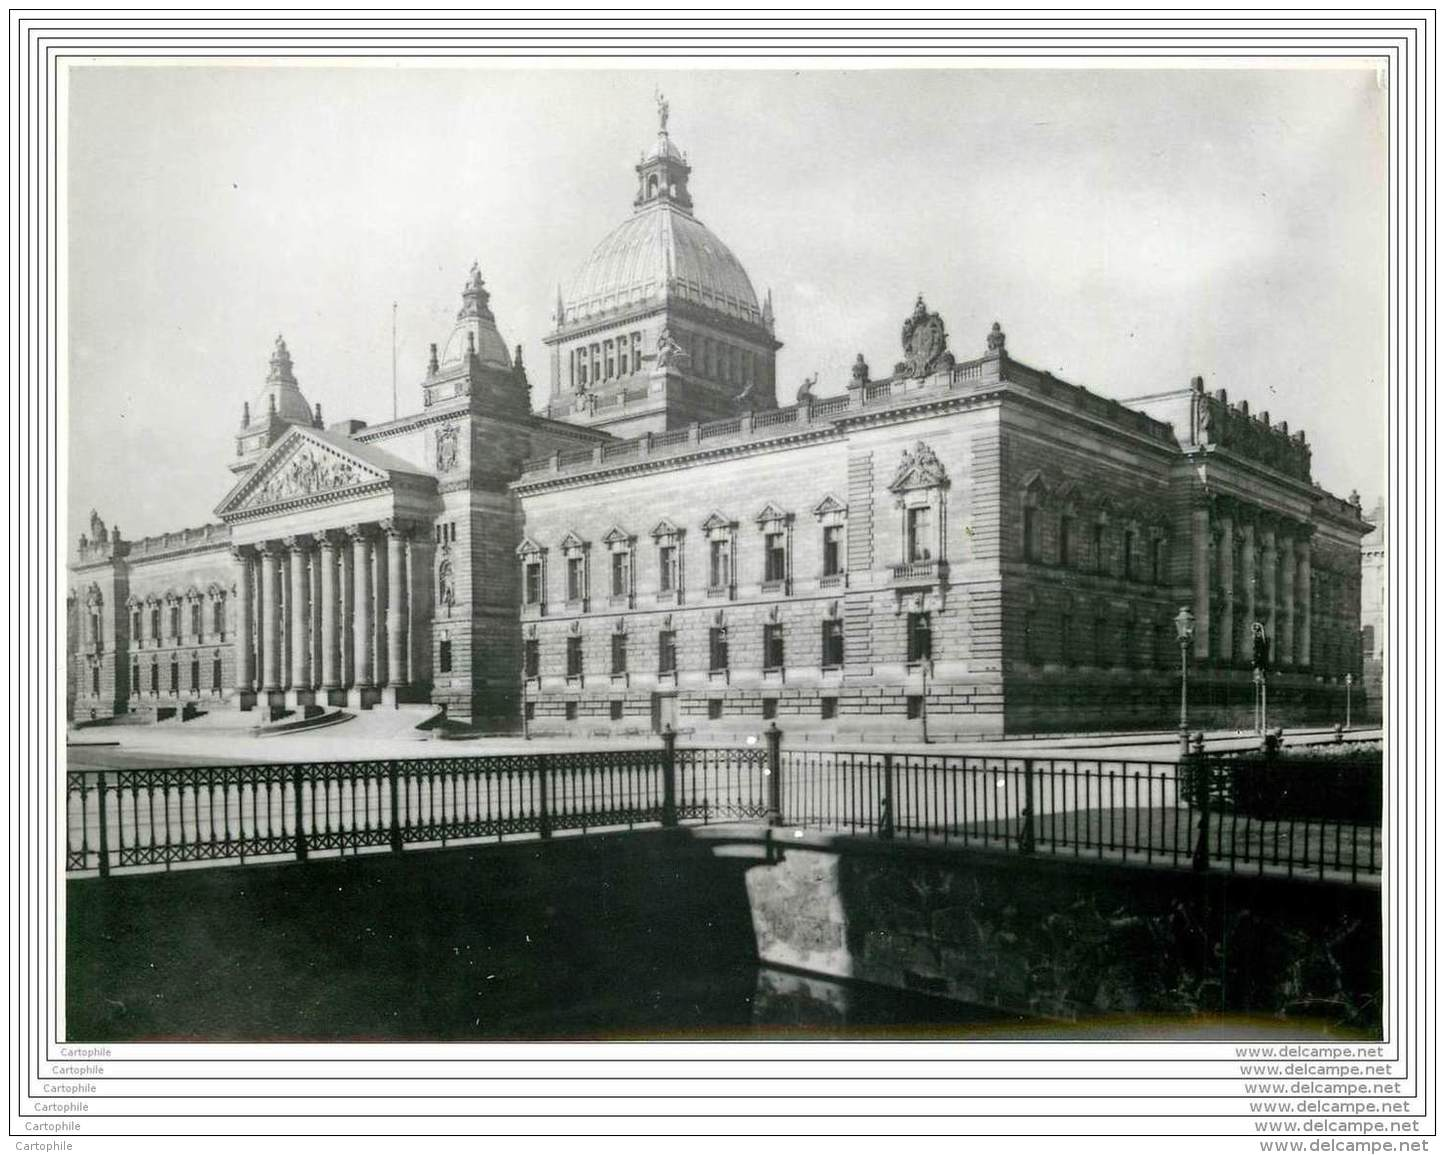 Press Photo - GERMANY - Leipzig - Supreme Court Building Where The Reichstag Fire Trial Opens In 1933 - Lieux